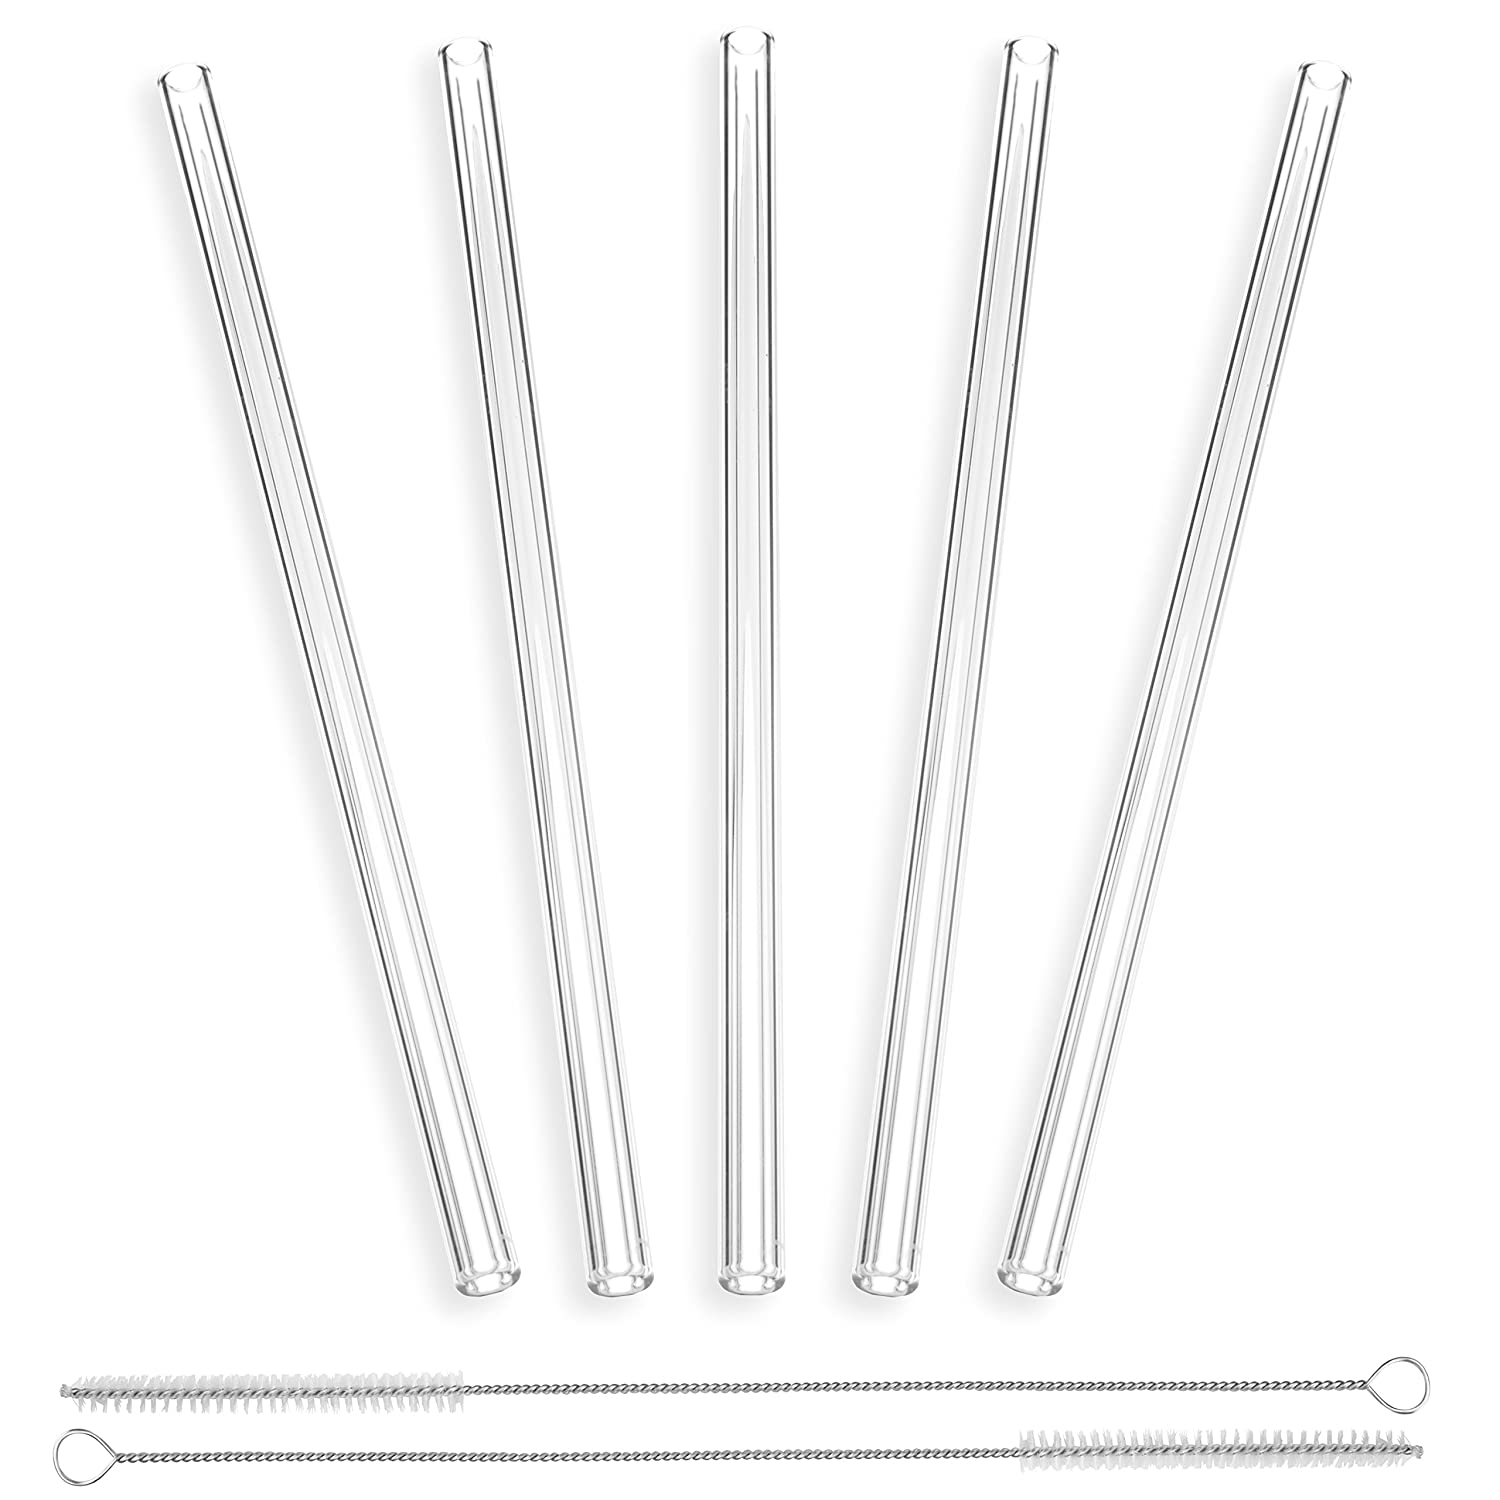 Glass Drinking Straws Straight StrawGrace Handmade Glass Straws - 23 cm x 10 mm Reusable Ideal for Smoothie etc Set of 5 with 2 Brushes Healthy Free of BPA independently tested in DE